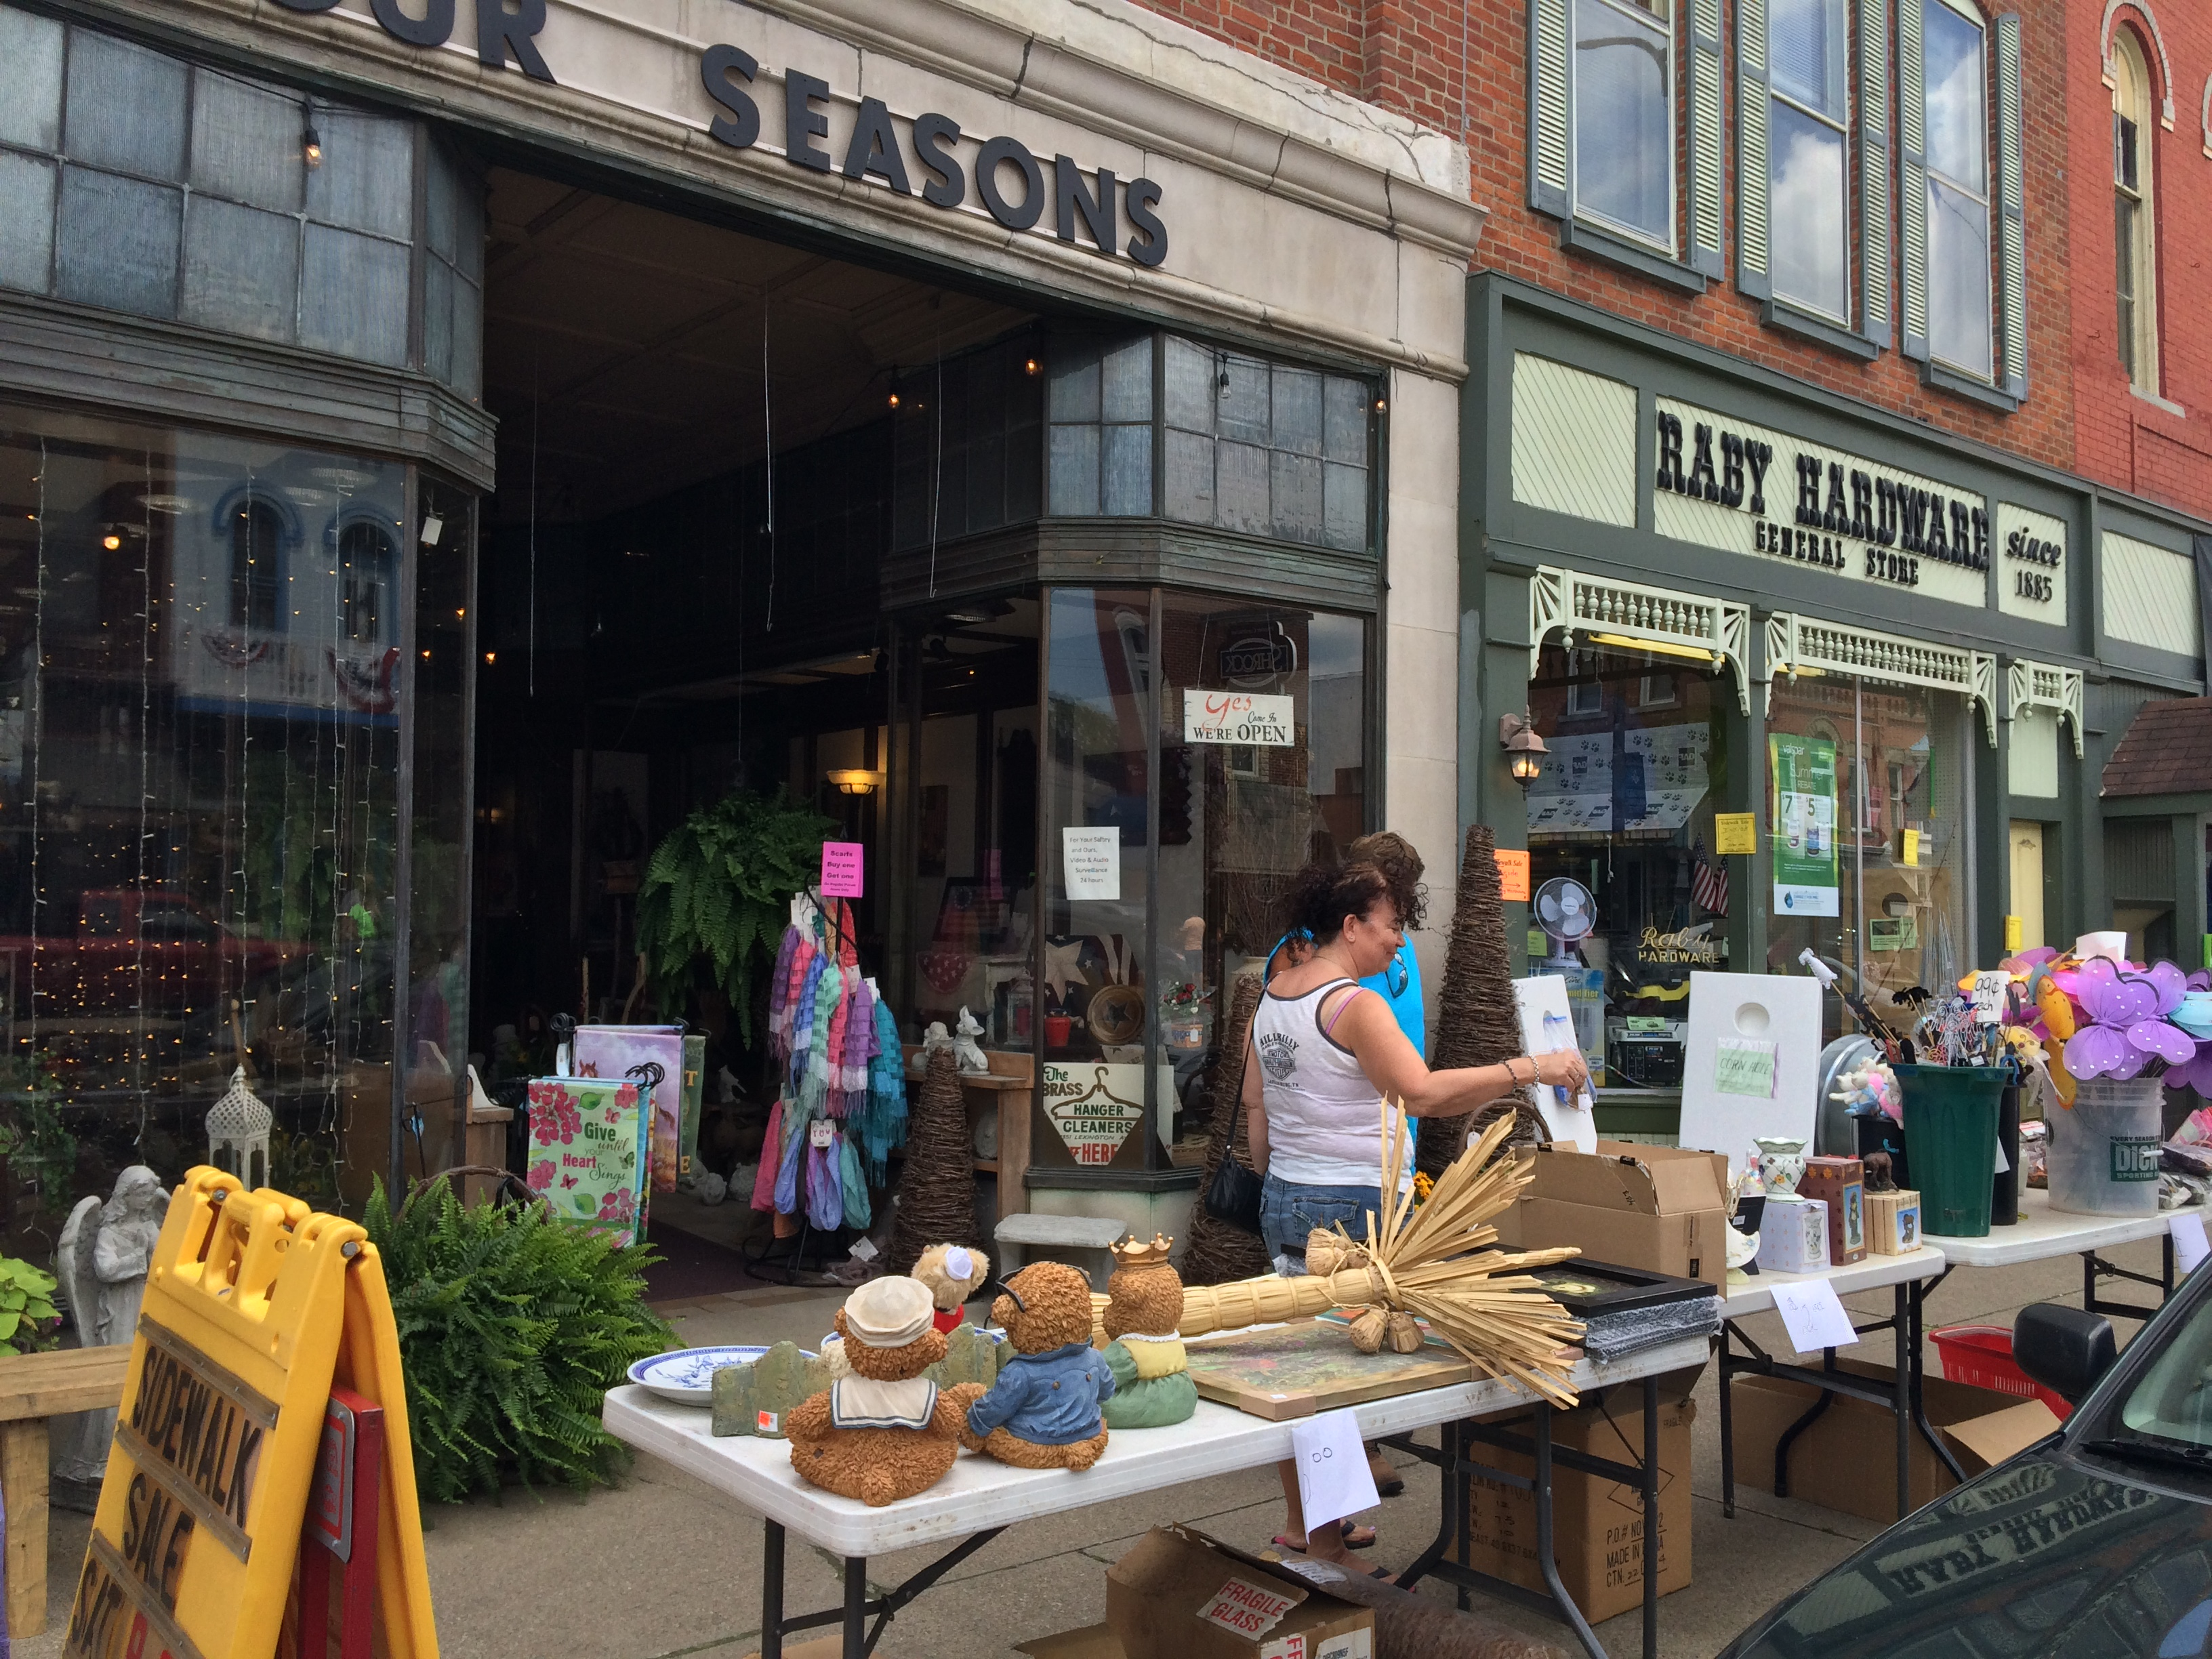 Merchandise tables in front of businesses in downtown Loudonville